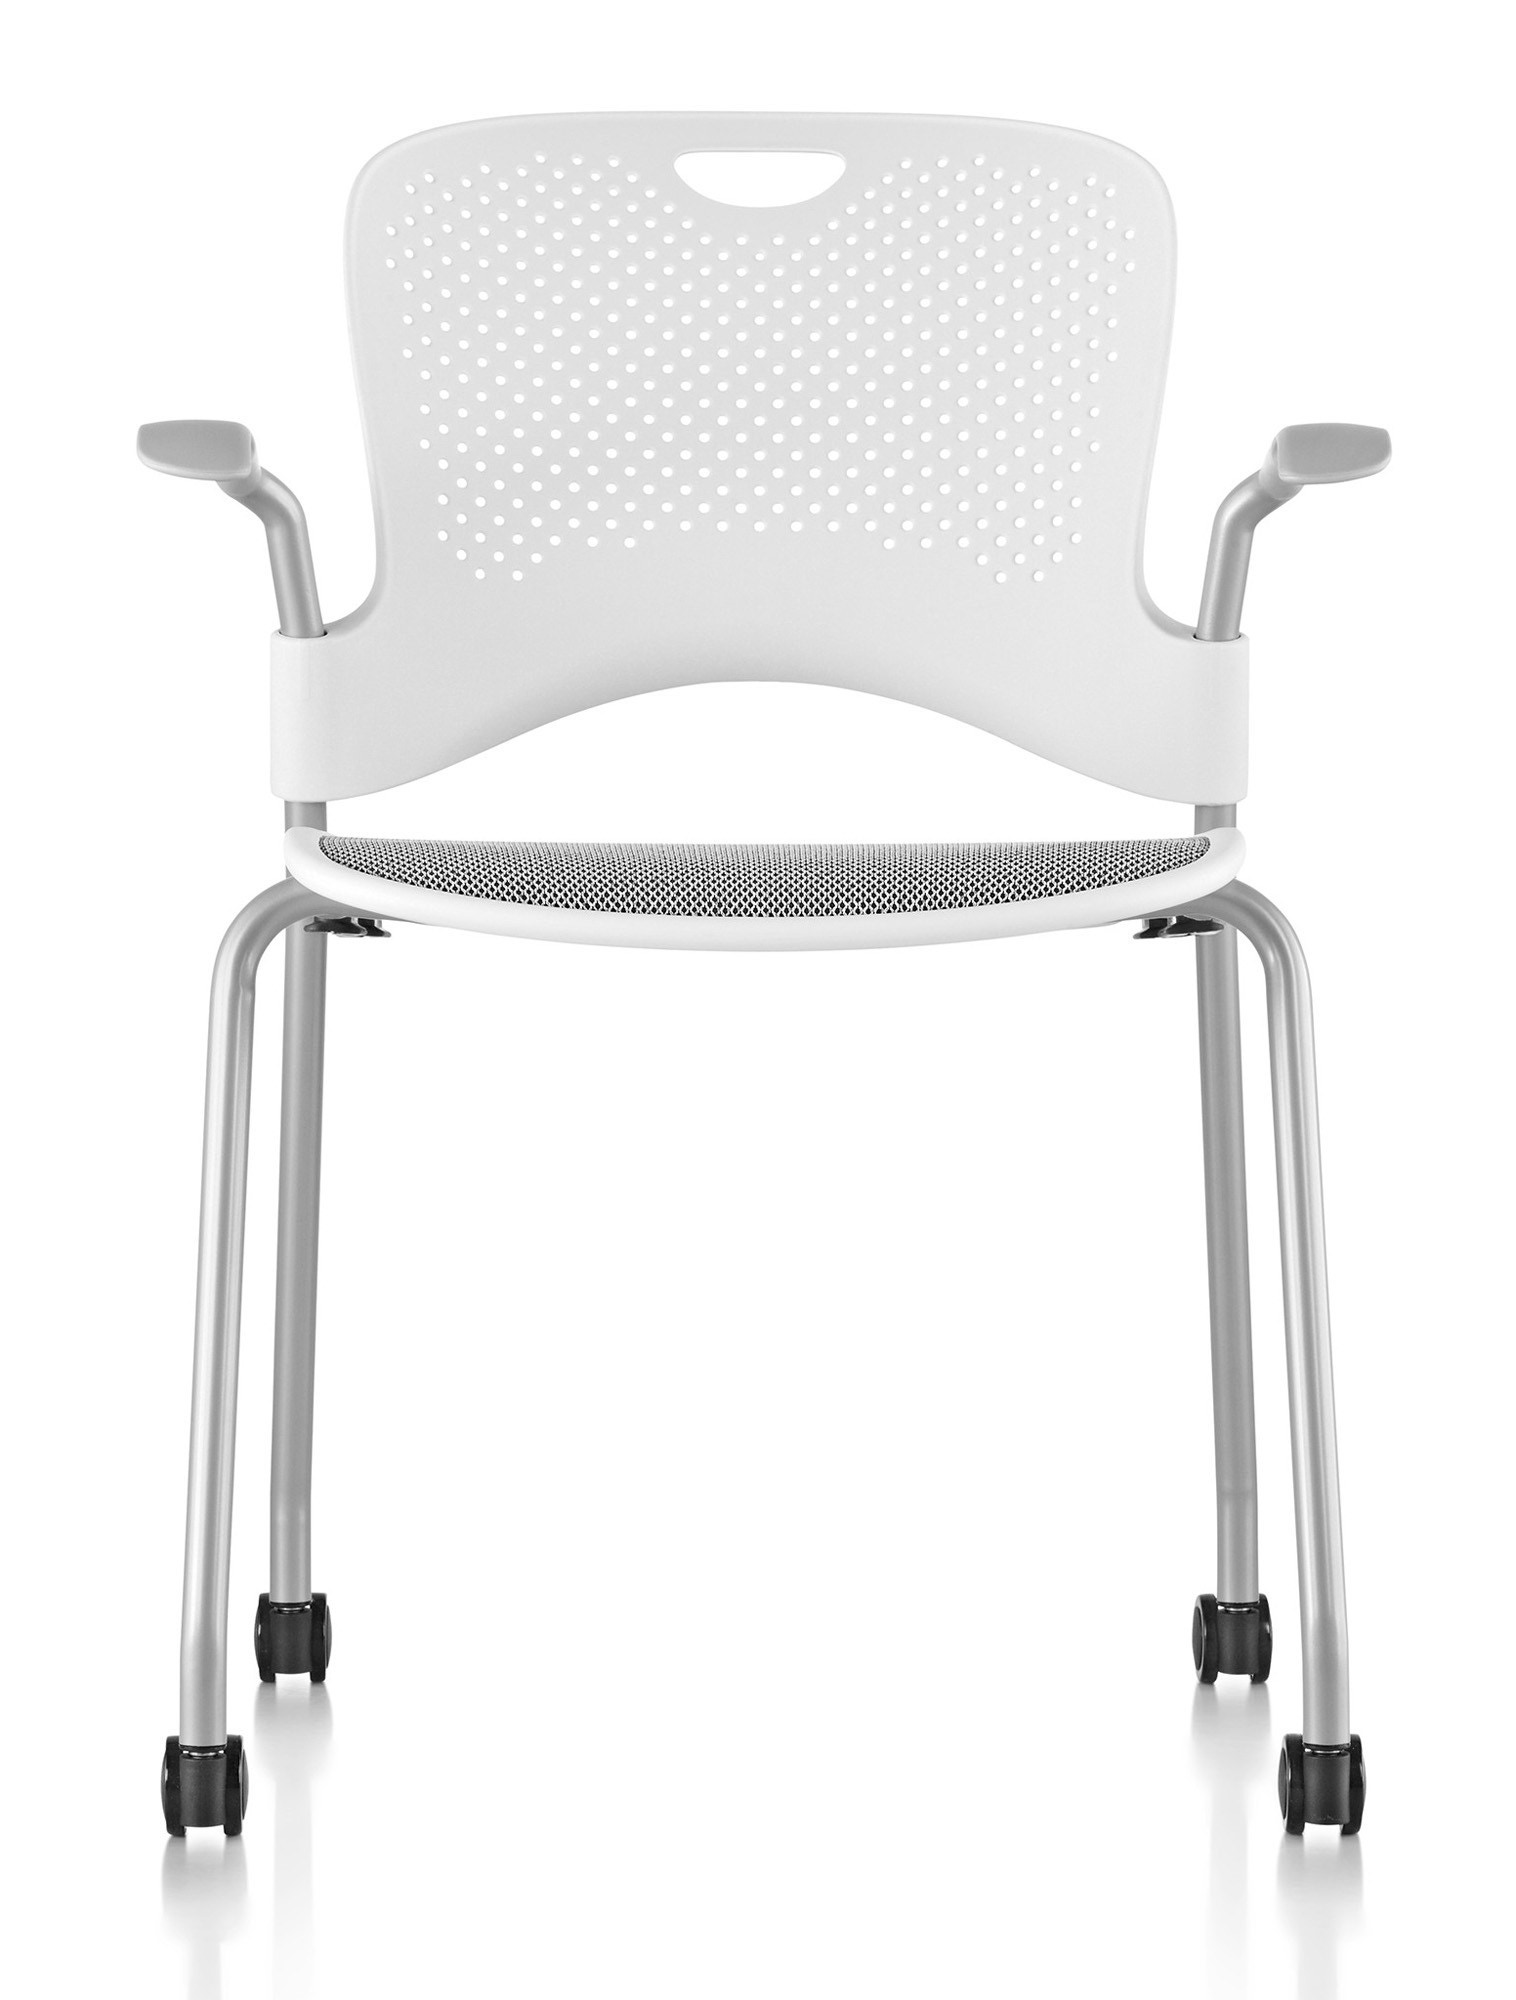 Herman Miller Caper 174 Stacking Chair With Flexnet